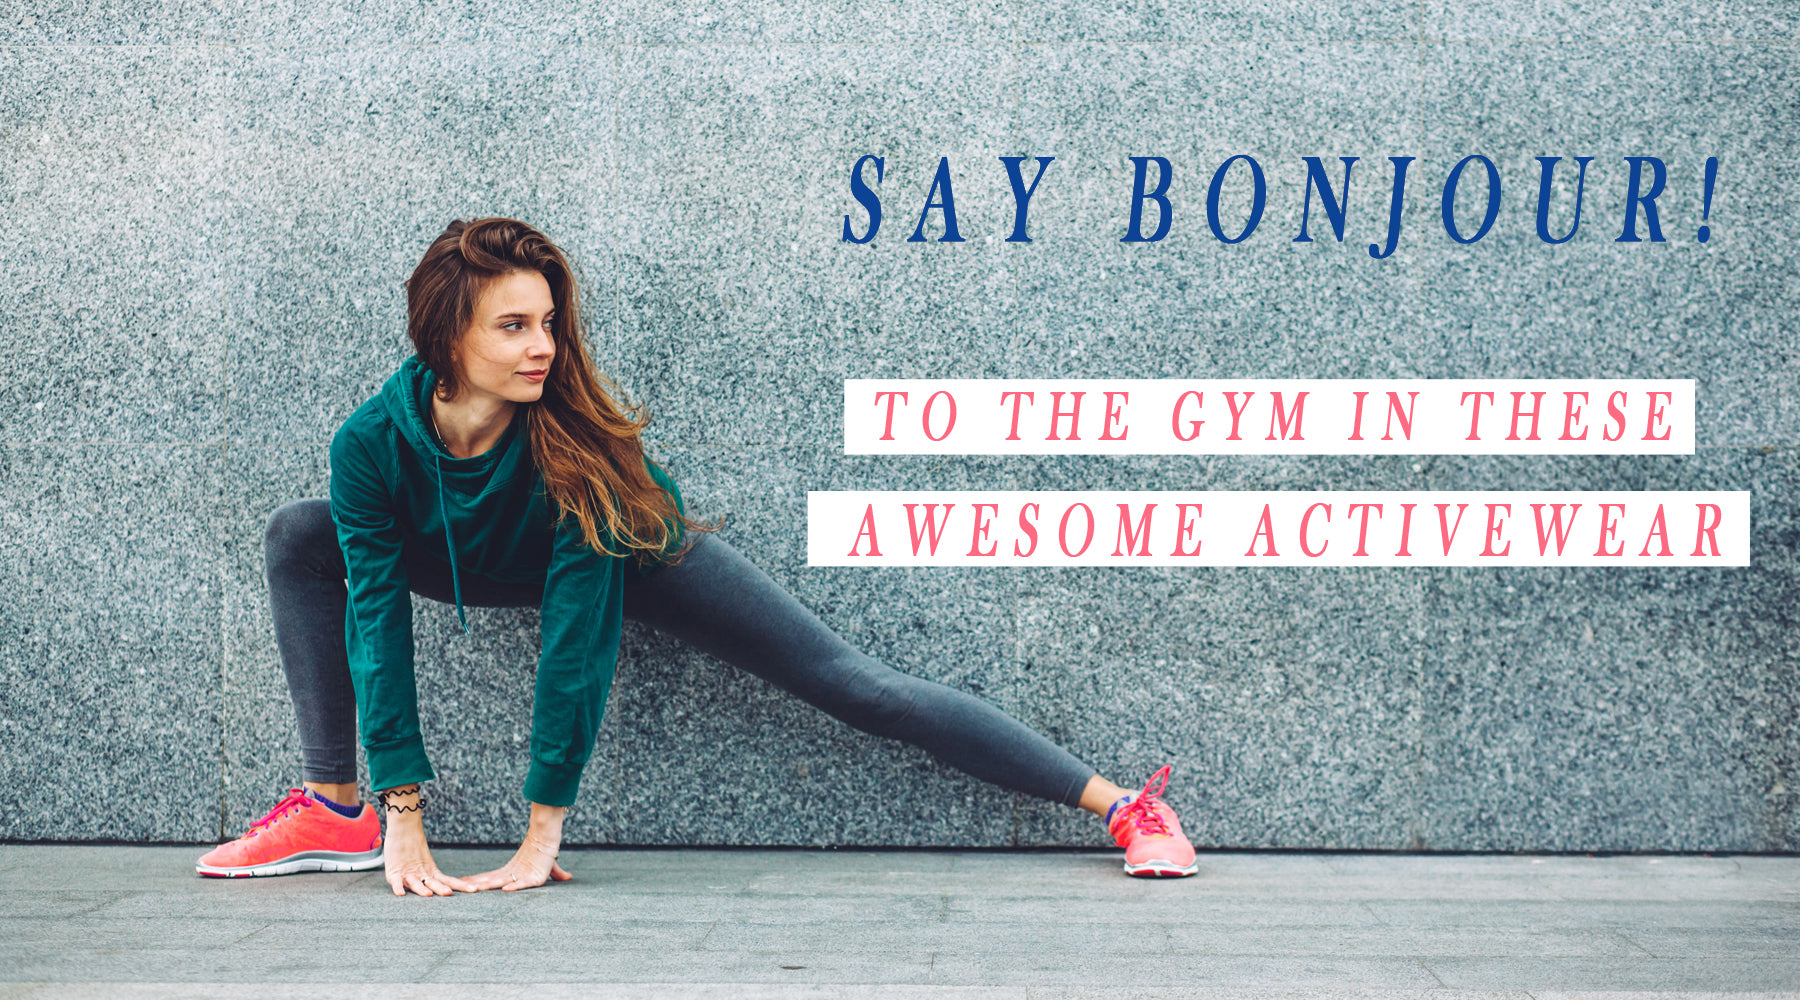 SAY BONJOUR TO THE GYM IN THESE AWESOME ACTIVEWEAR!